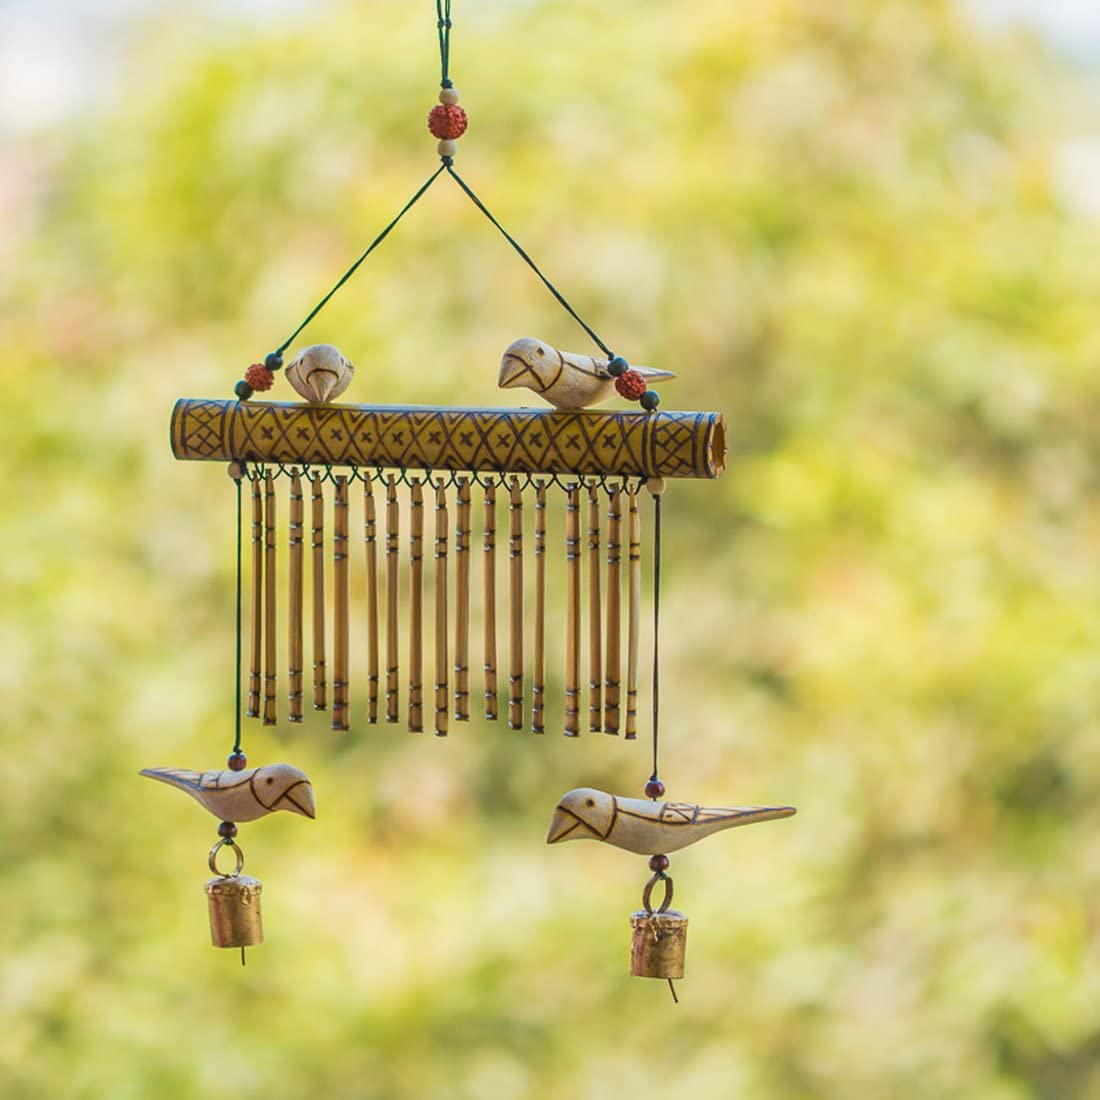 ExclusiveLane 67% OFF of fixed price Bird Collection Wooden Handmade New product Hanging Decorative